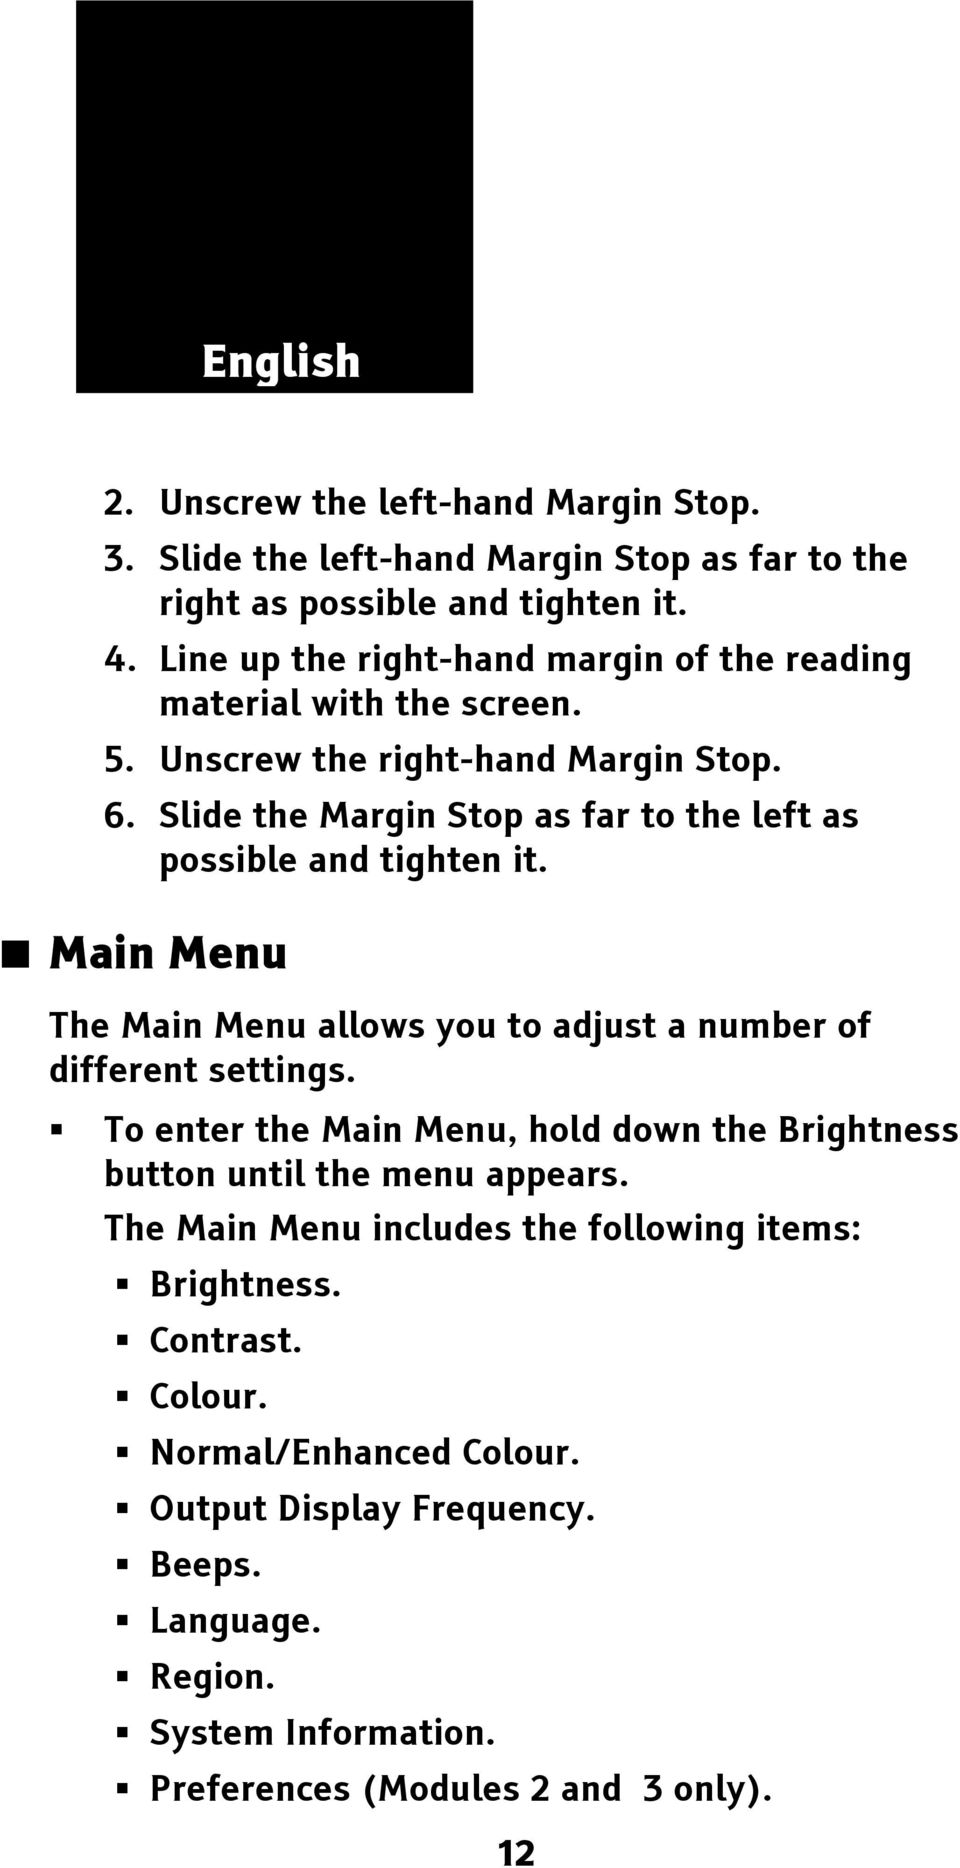 Slide the Margin Stop as far to the left as possible and tighten it. Main Menu The Main Menu allows you to adjust a number of different settings.